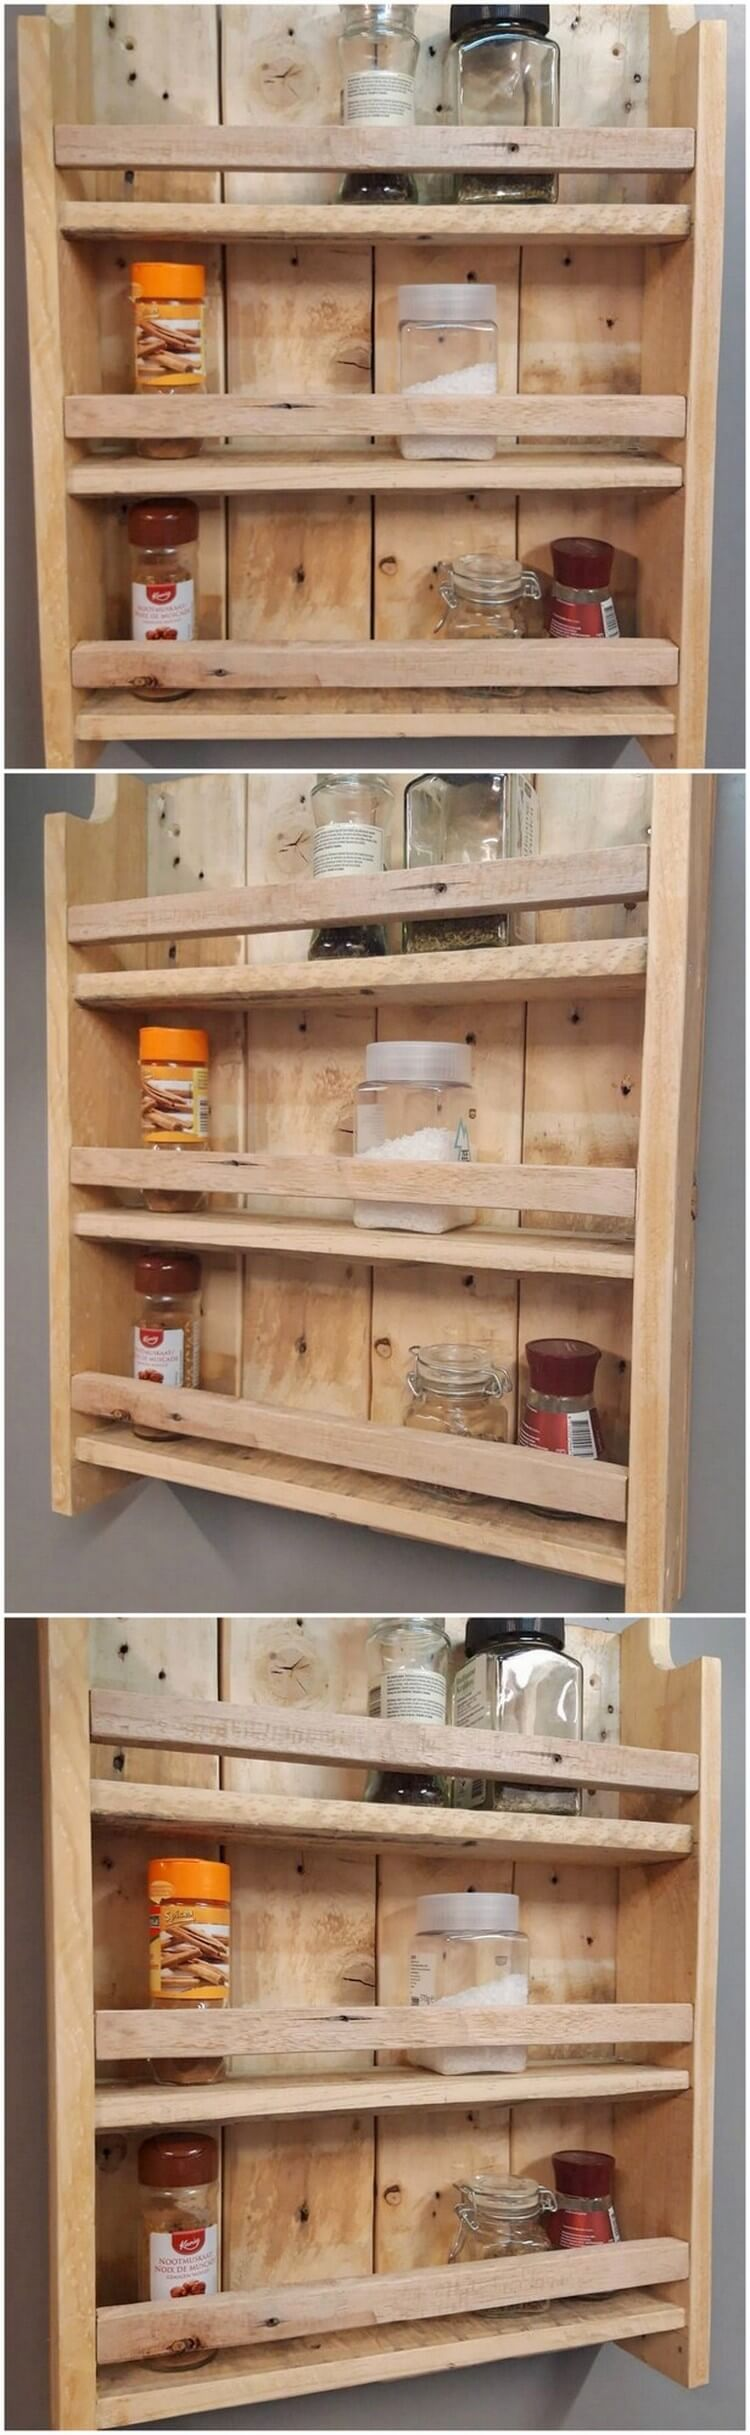 Pallet Kitchen Spice Rack